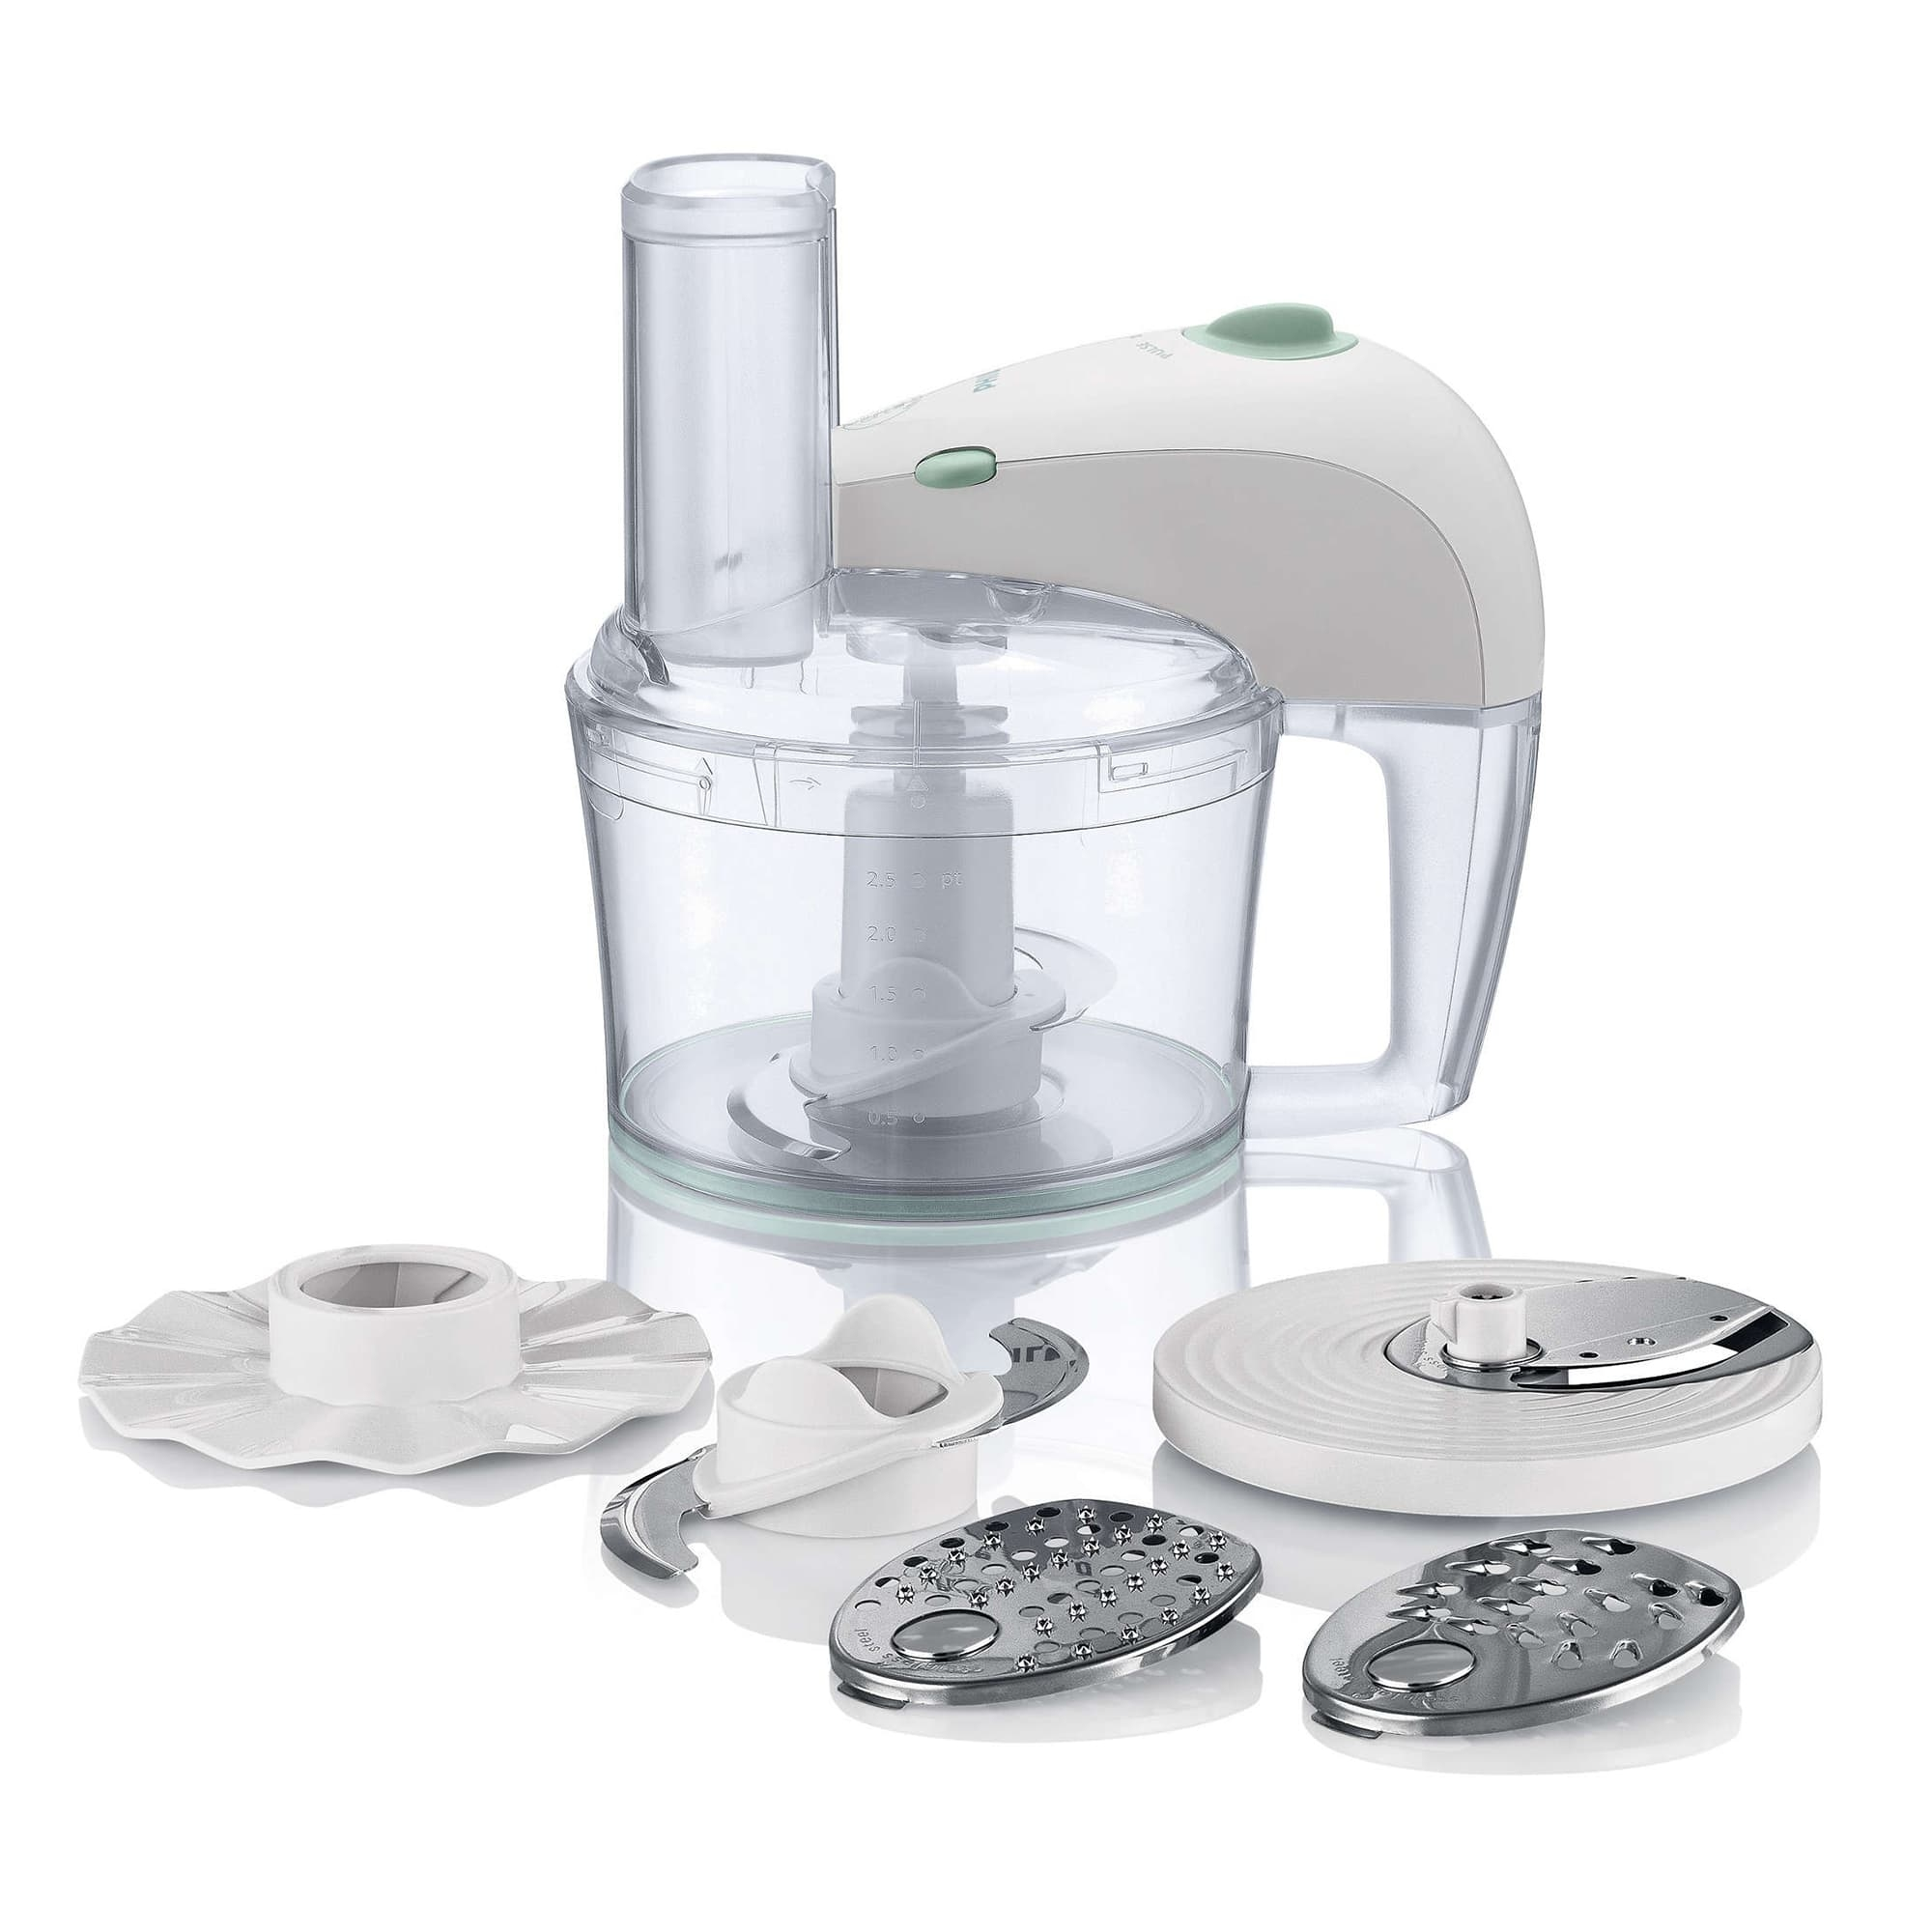 Cuisinart Food Processor Functions